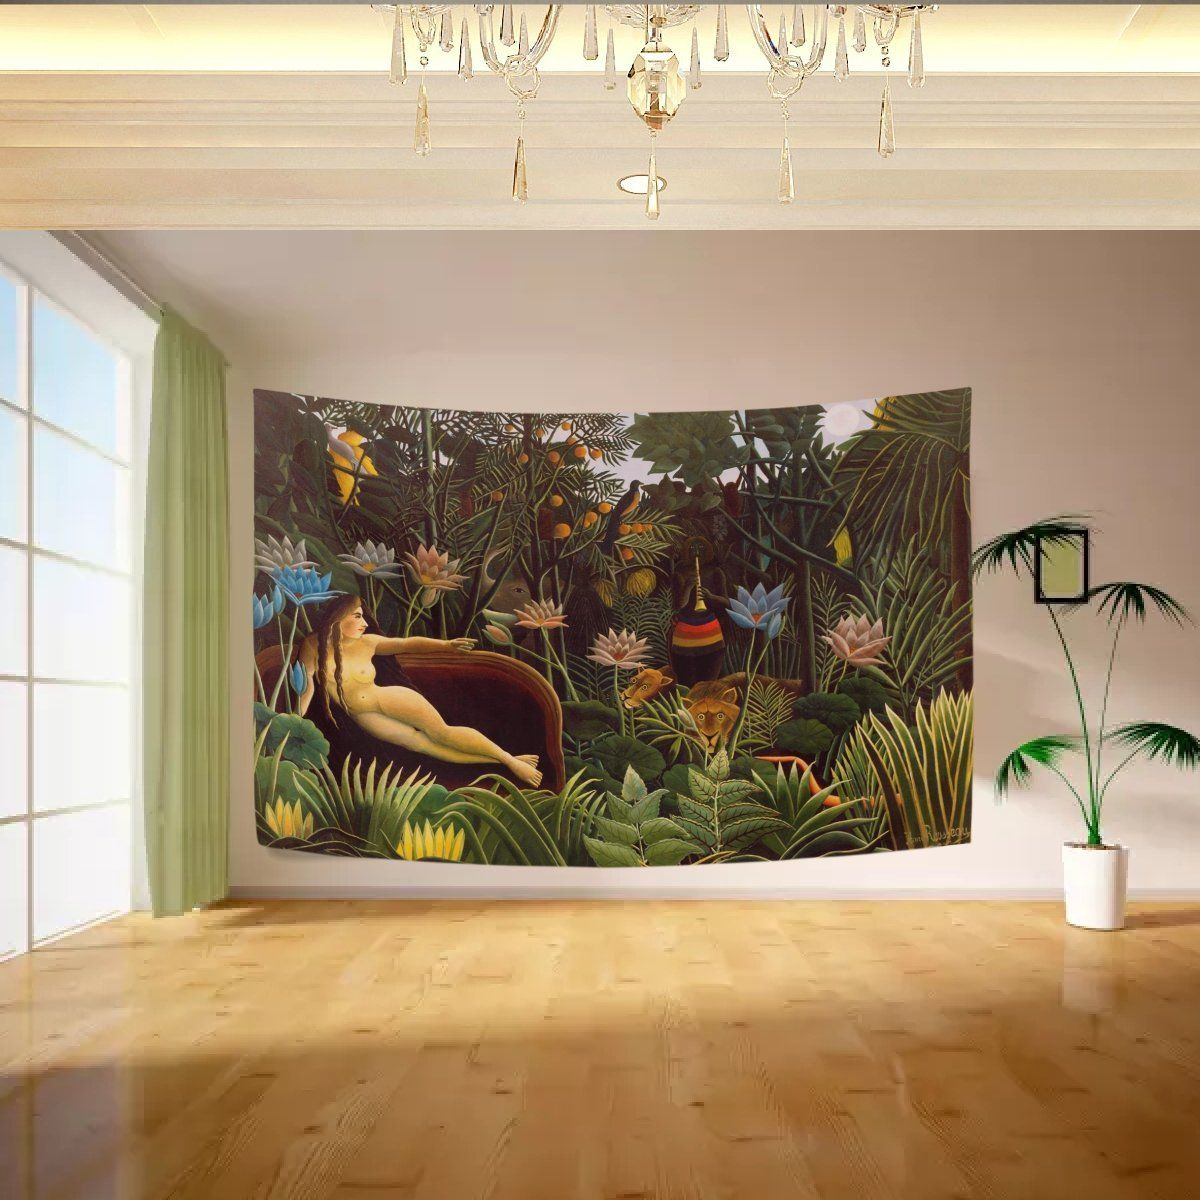 Vipsk dream by henri rousseau tapestry wall hanging artistic light